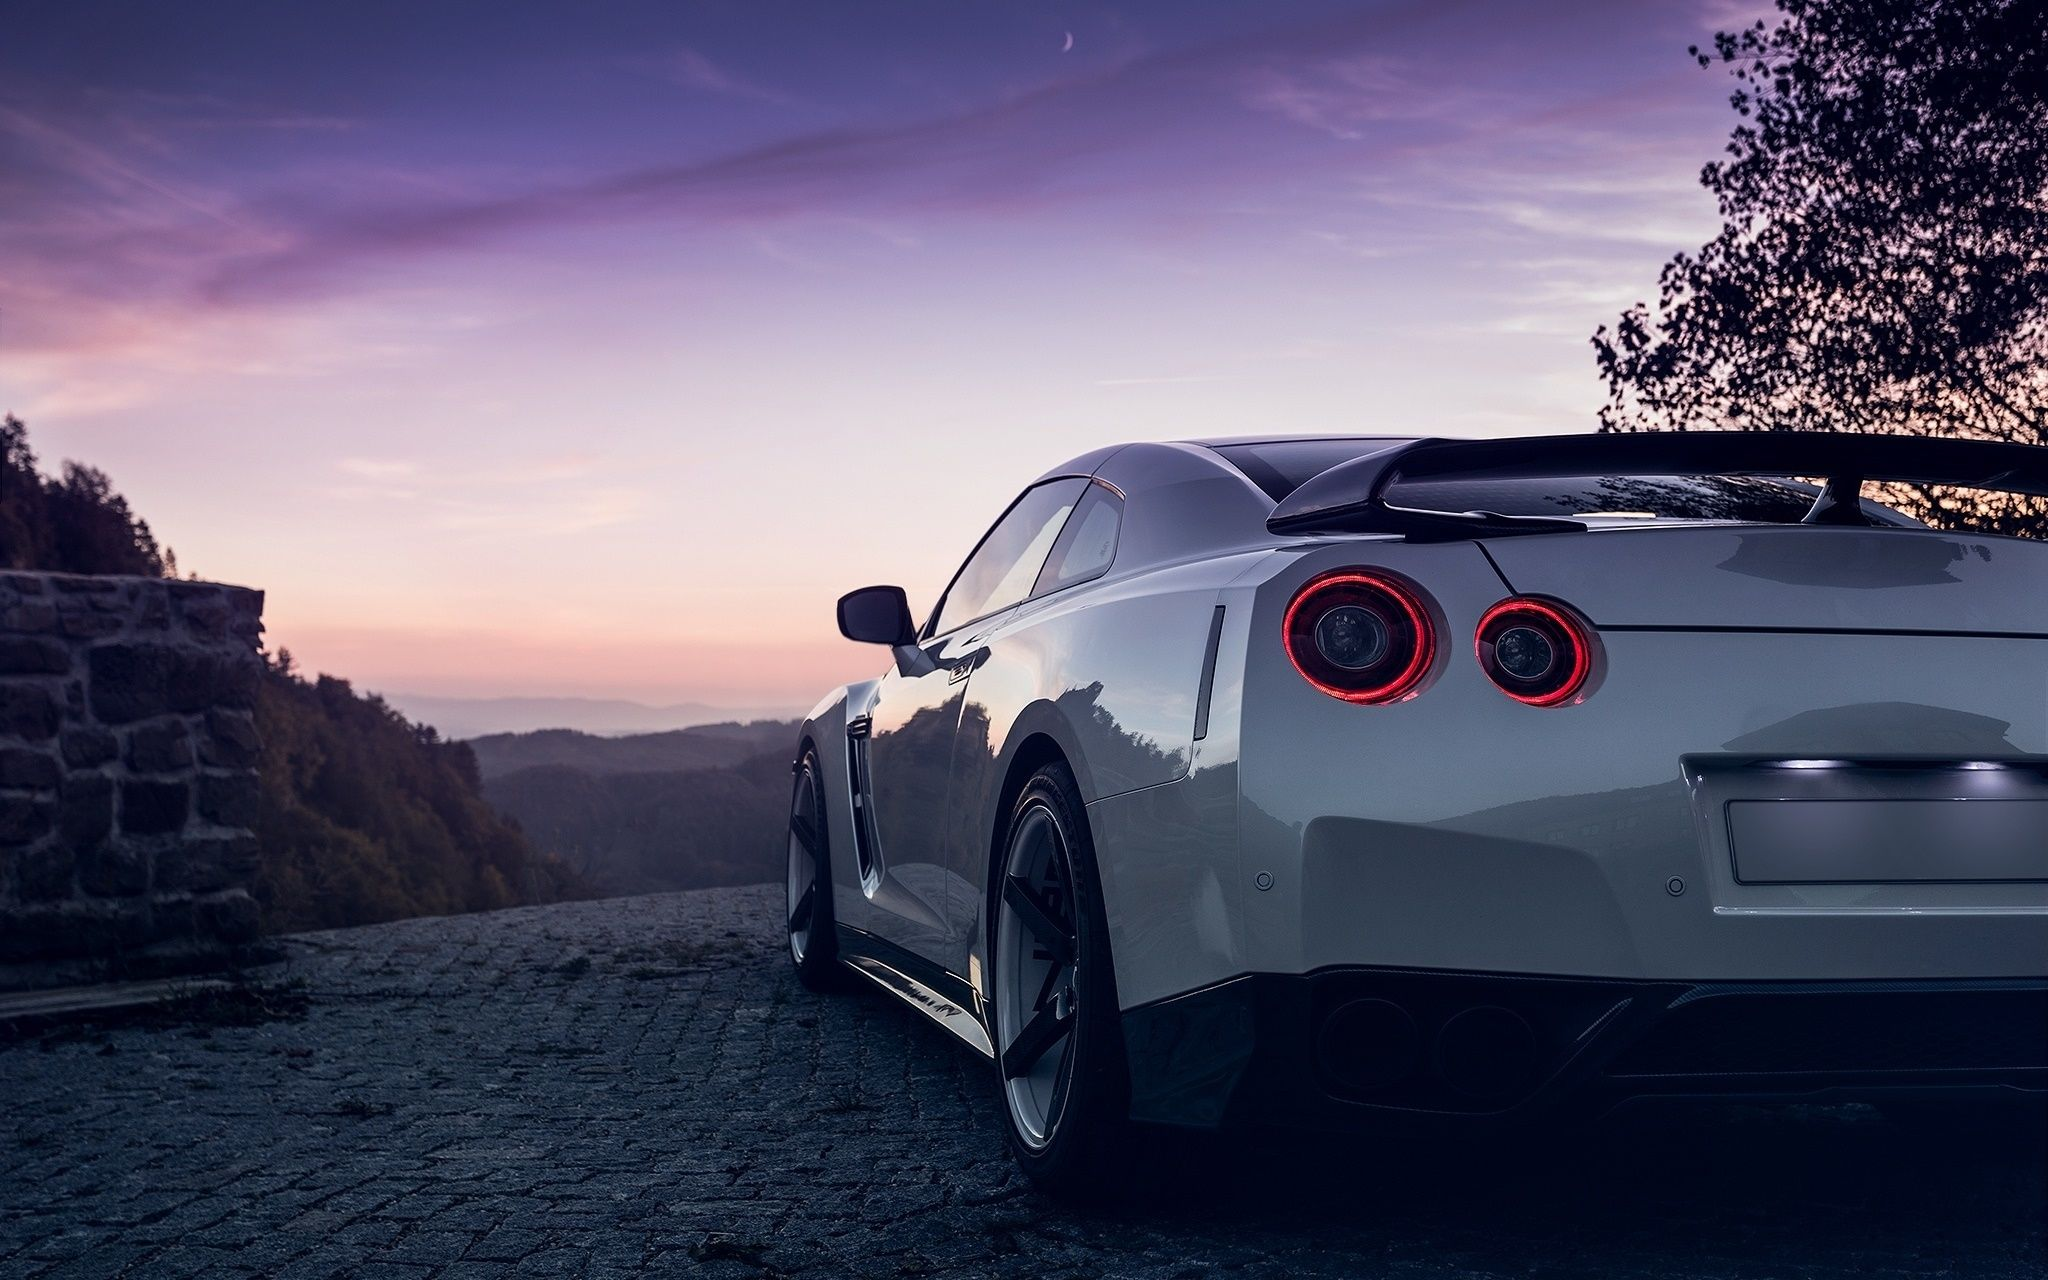 Delicieux Nissan Skyline GTR R Wallpapers Wallpaper × R GTR